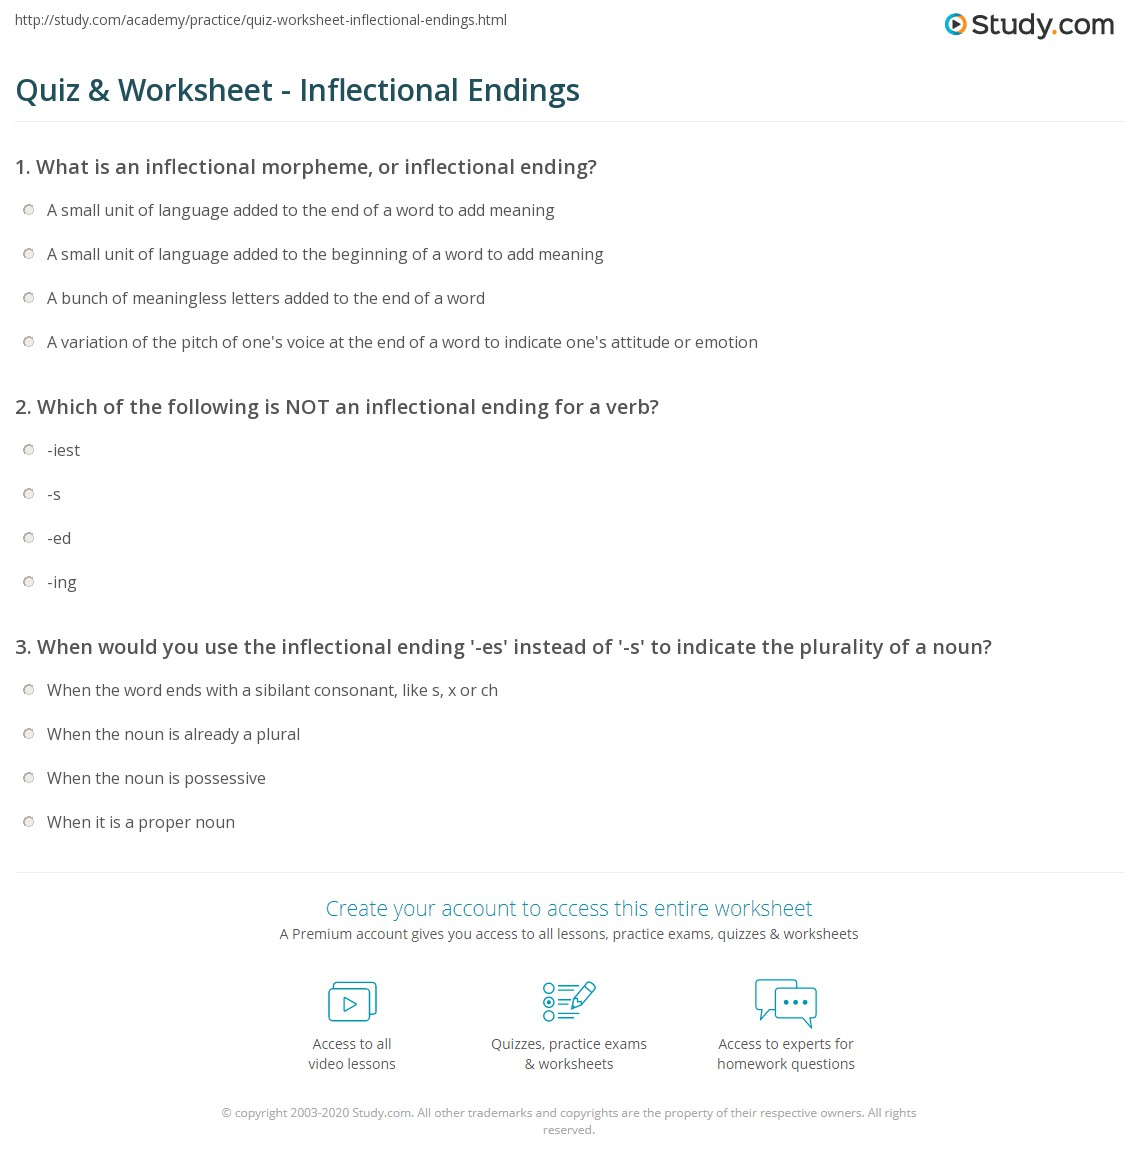 Quiz Worksheet Inflectional Endings – Inflectional Endings Worksheet